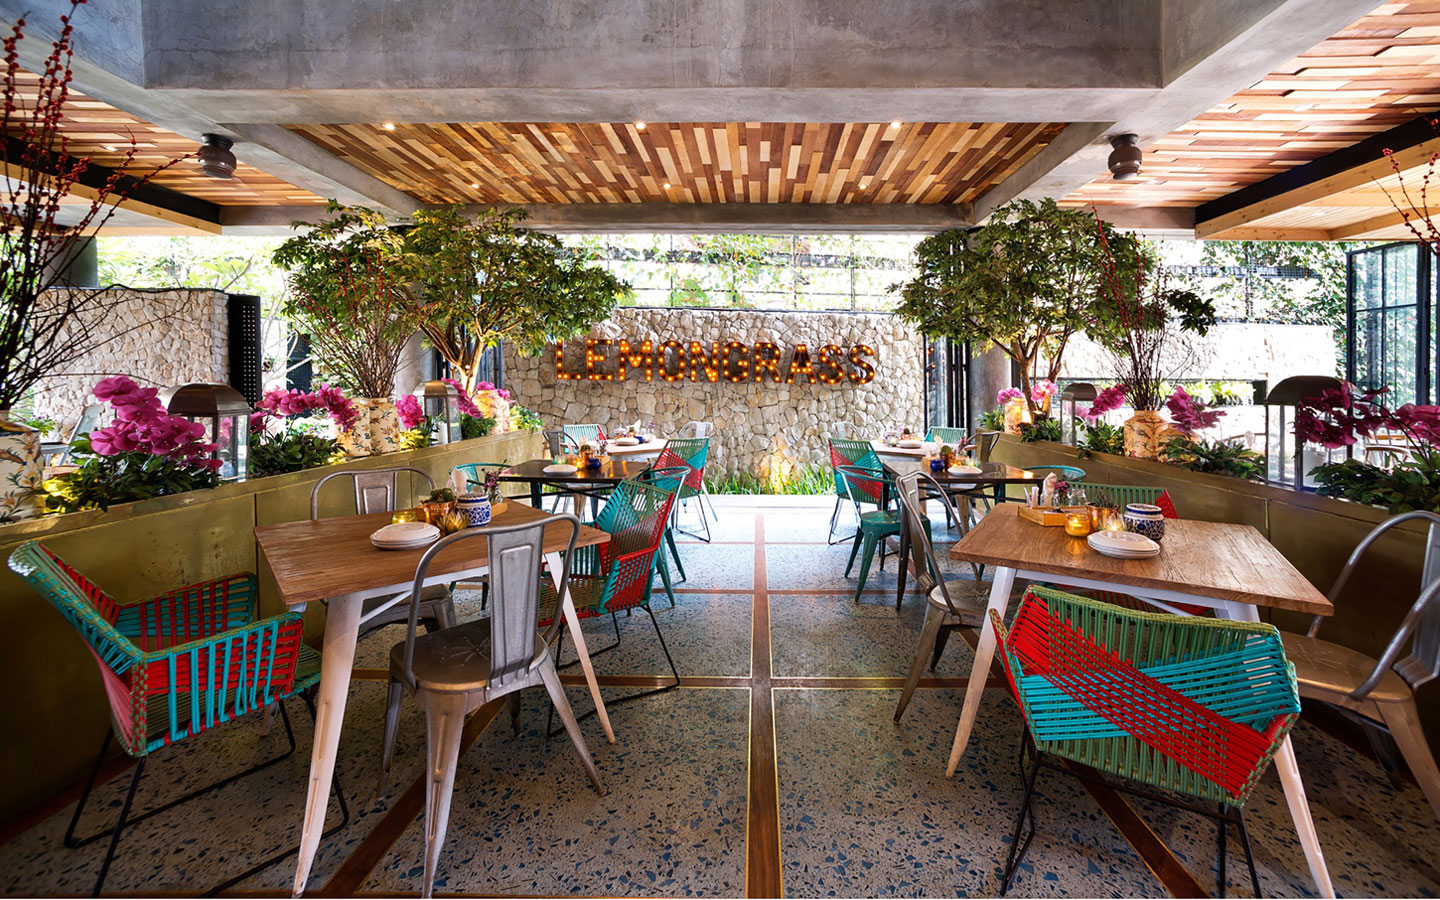 Stylish Tropical Paradise Theme Of Lemongrass Restaurant Designed By Einstein Associates Caandesign Architecture And Home Design Blog